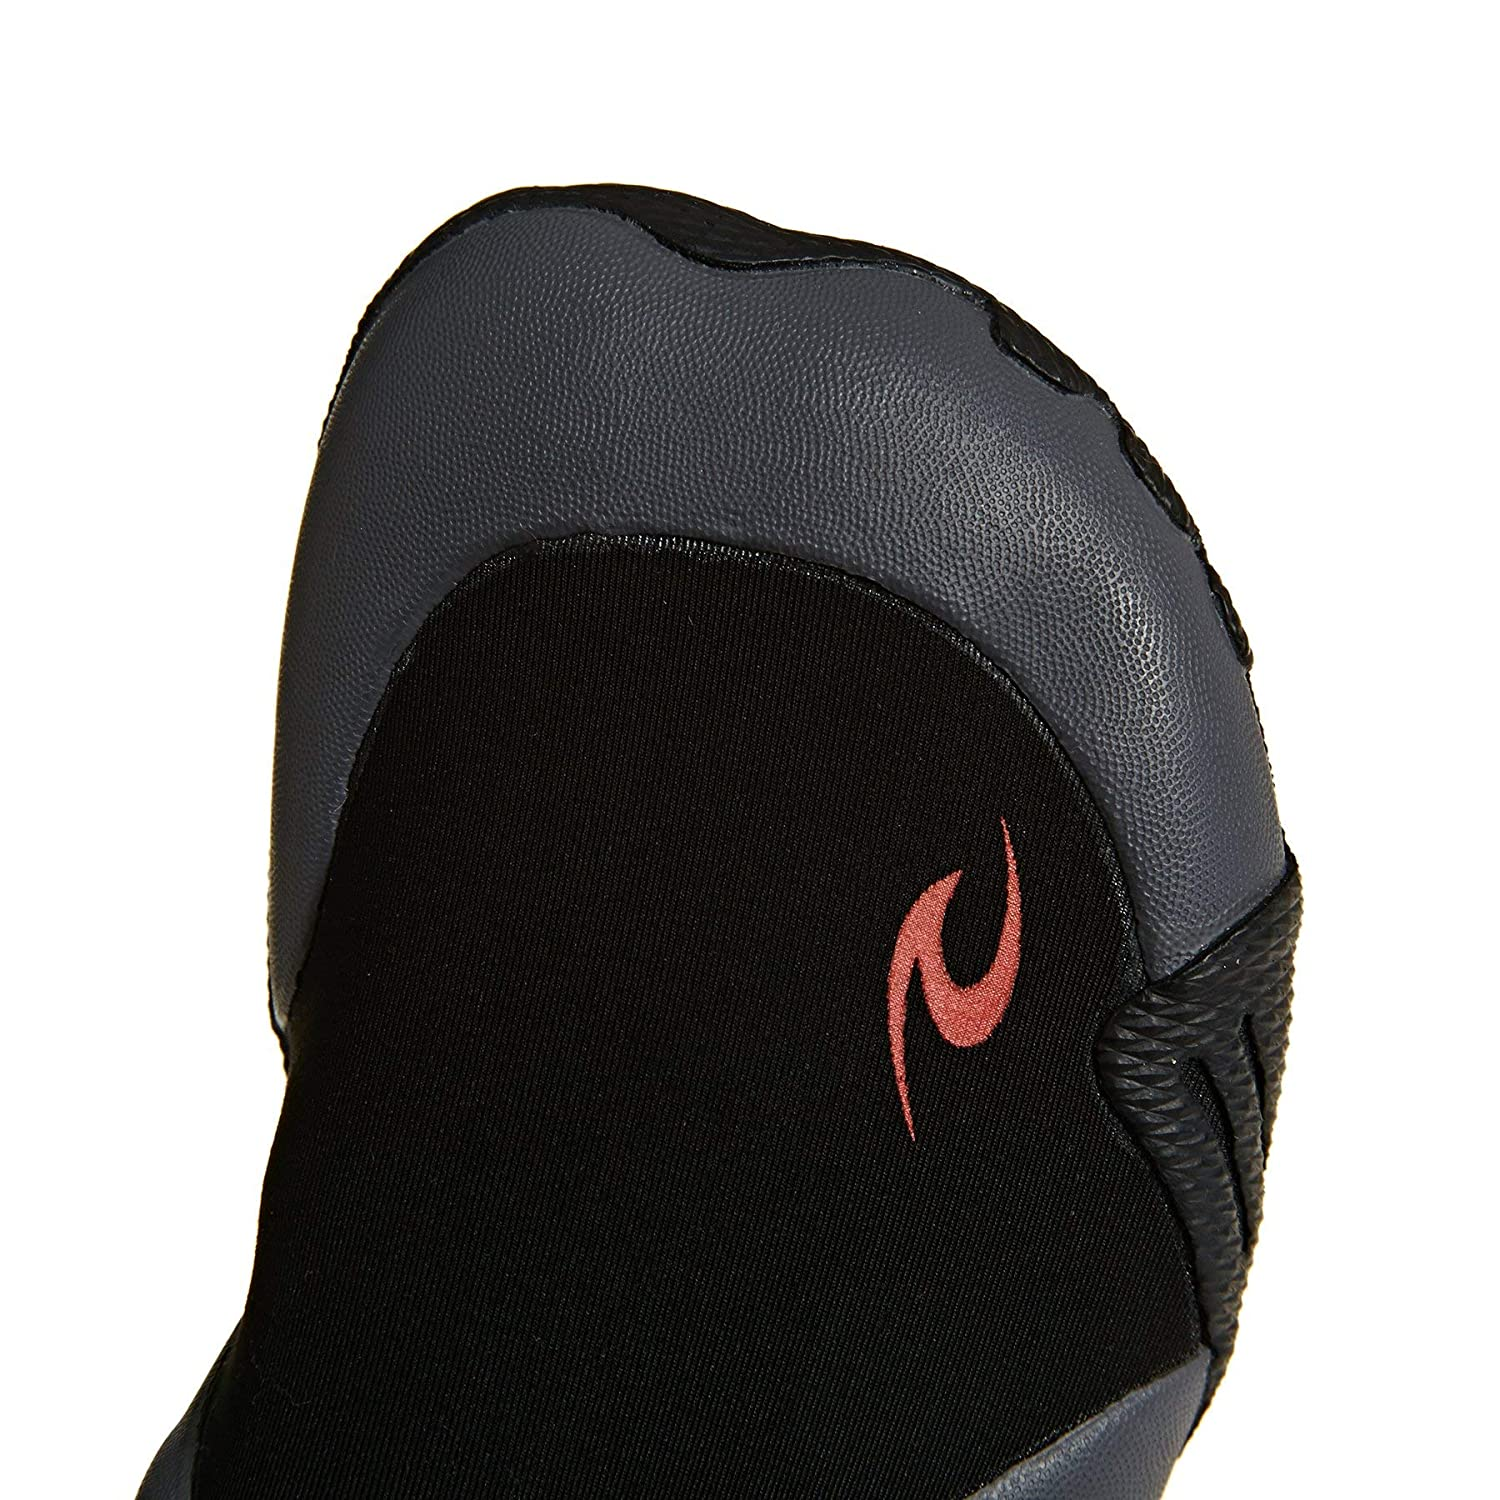 Unisex Rip Curl Dawn Patrol 5MM Round Toe Neoprene Wetsuit Boots Shoes SOS Black Sensitive Sole Easy Slide on System